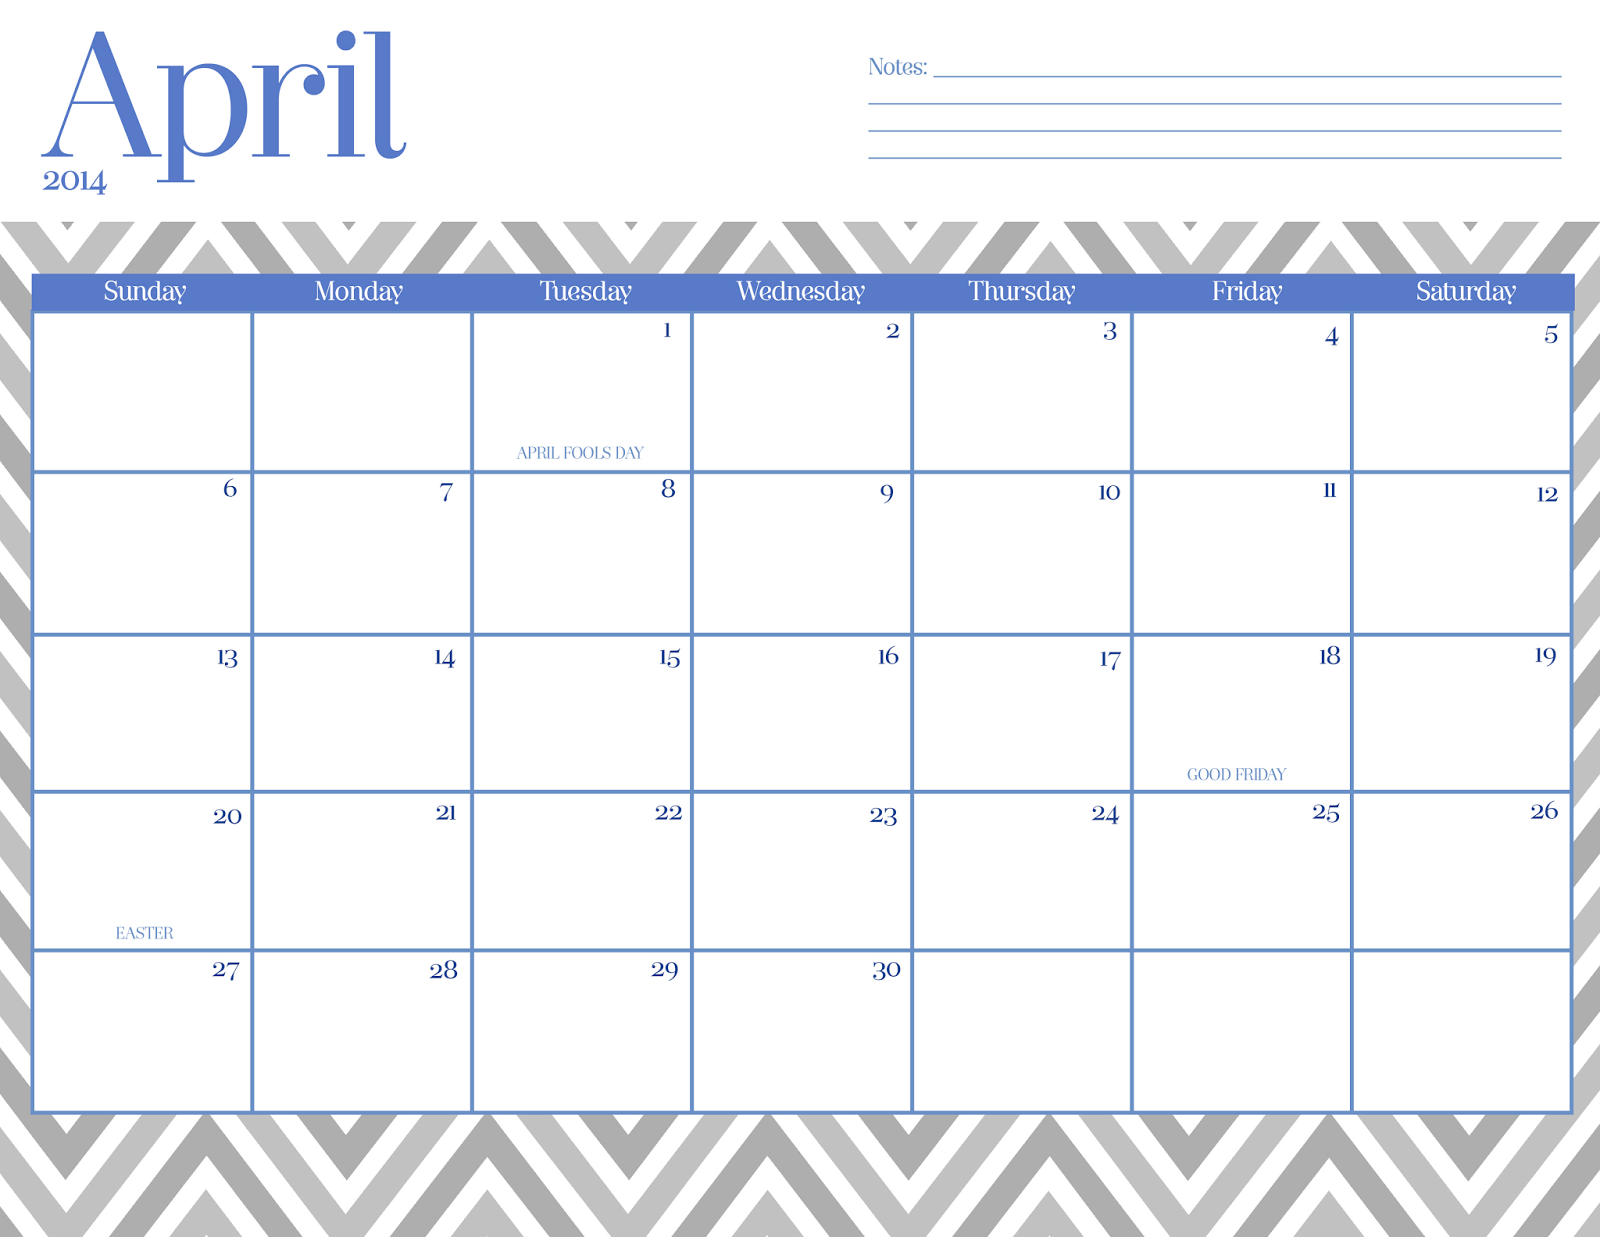 Oh So Lovely Blog: FREE PRINTABLE 2014 CALENDARS ARE HERE!